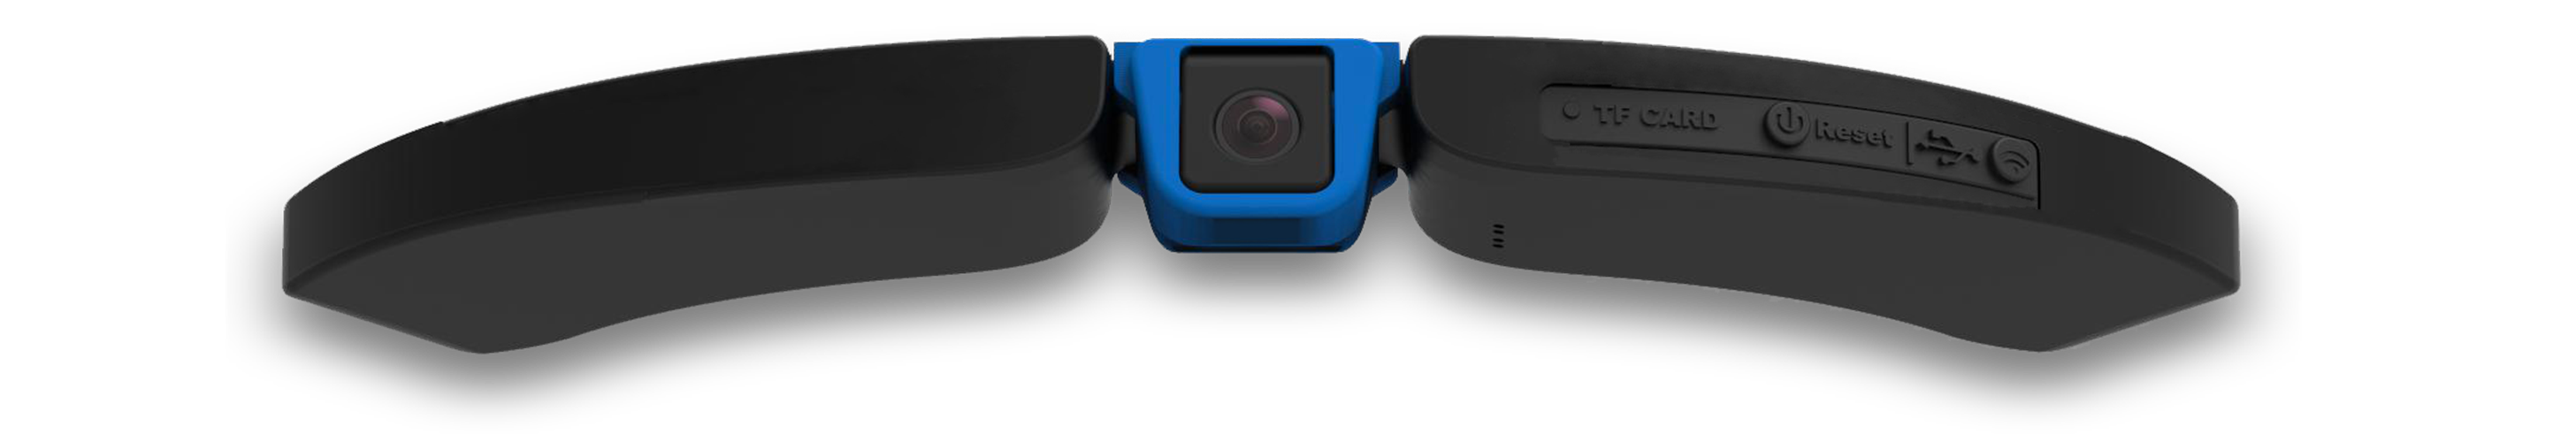 Cambox ISI3 new generation helmet camera for equestrian sports